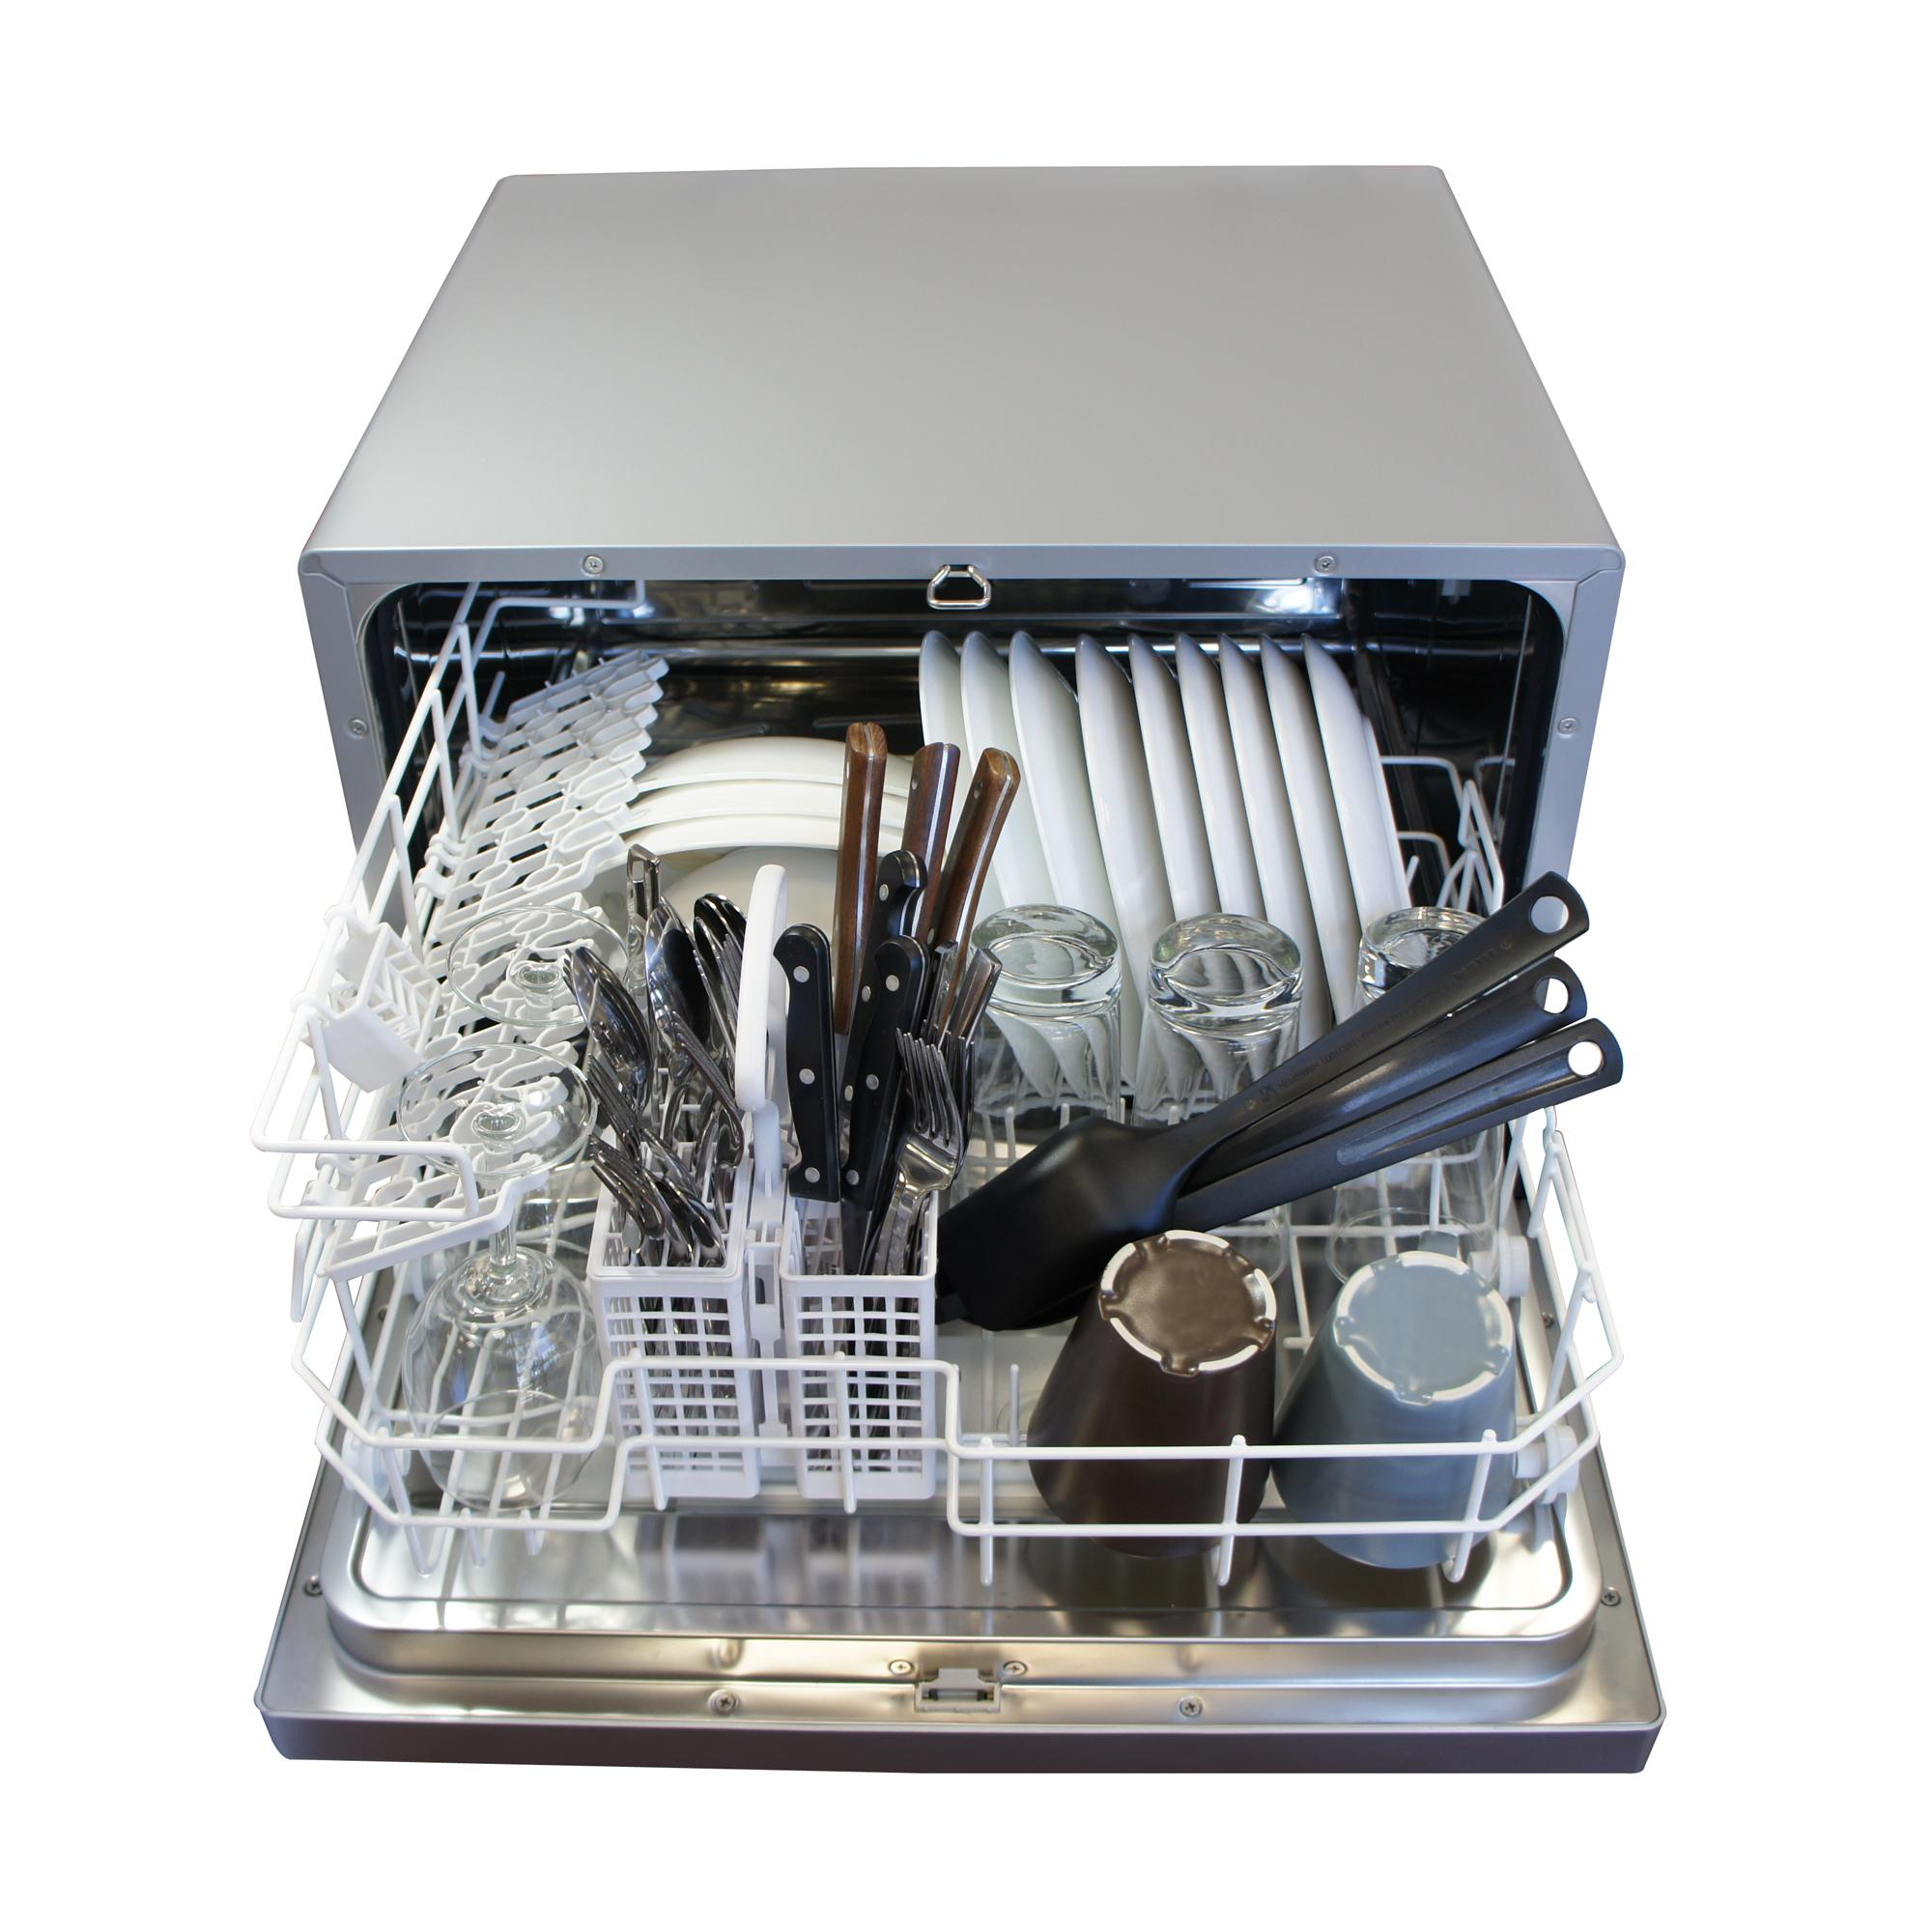 Mini Dishwashers Spt Countertop Dishwasher Silver Amazonca Home Kitchen